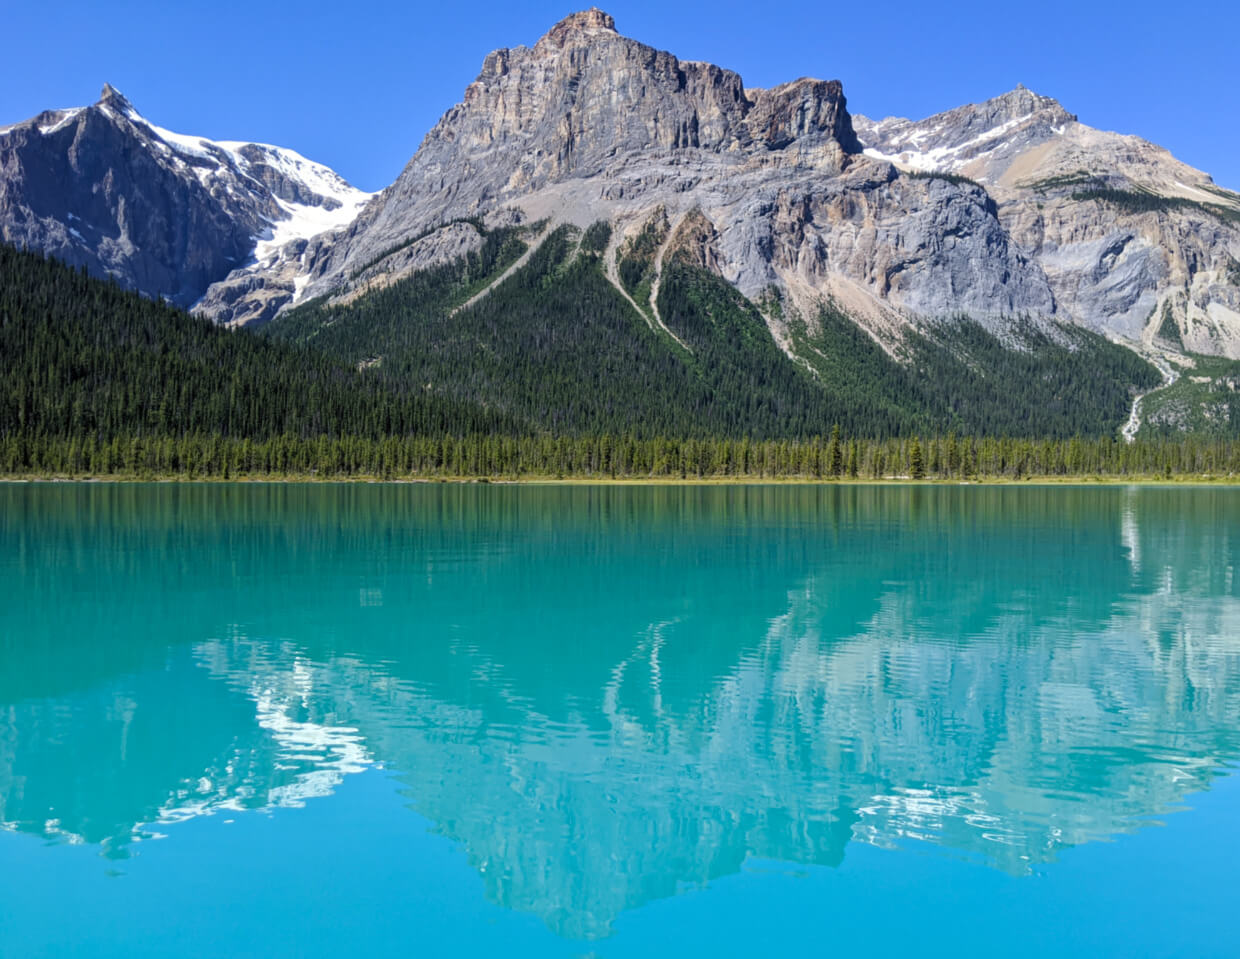 On water view of Emerald Lake, surrounded by snow capped mountains and bordered by forest. The lake colour is bright blue